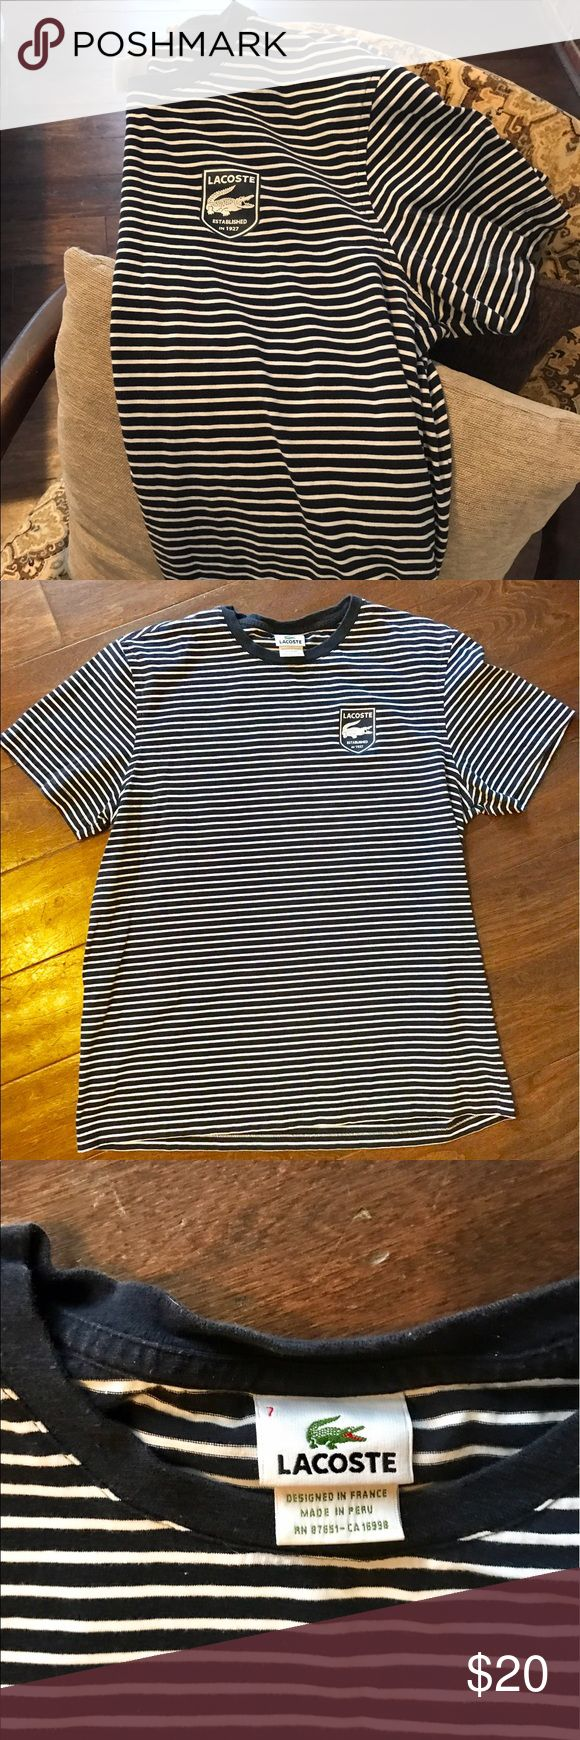 Lacoste t shirt Lacoste T shirt only worn once. Like new condition. No flaws. Lacoste Shirts Tees - Short Sleeve